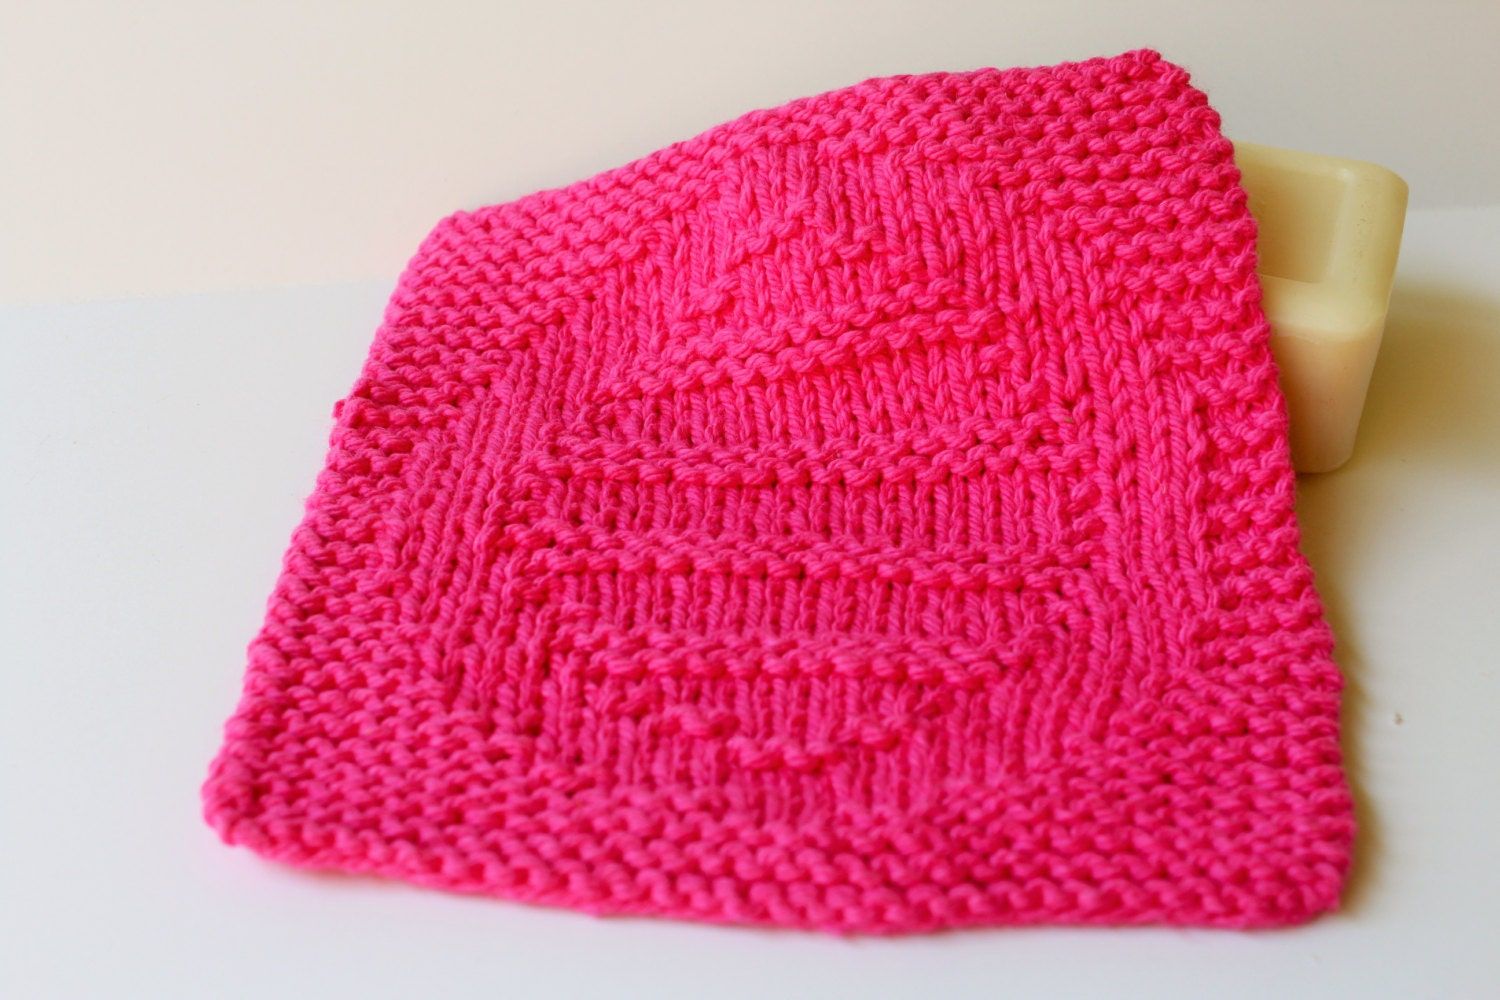 Knitted Dishcloth Patterns For Easter : Easter Egg Knit Easter Dishcloth Pink Easter Washcloth Pink